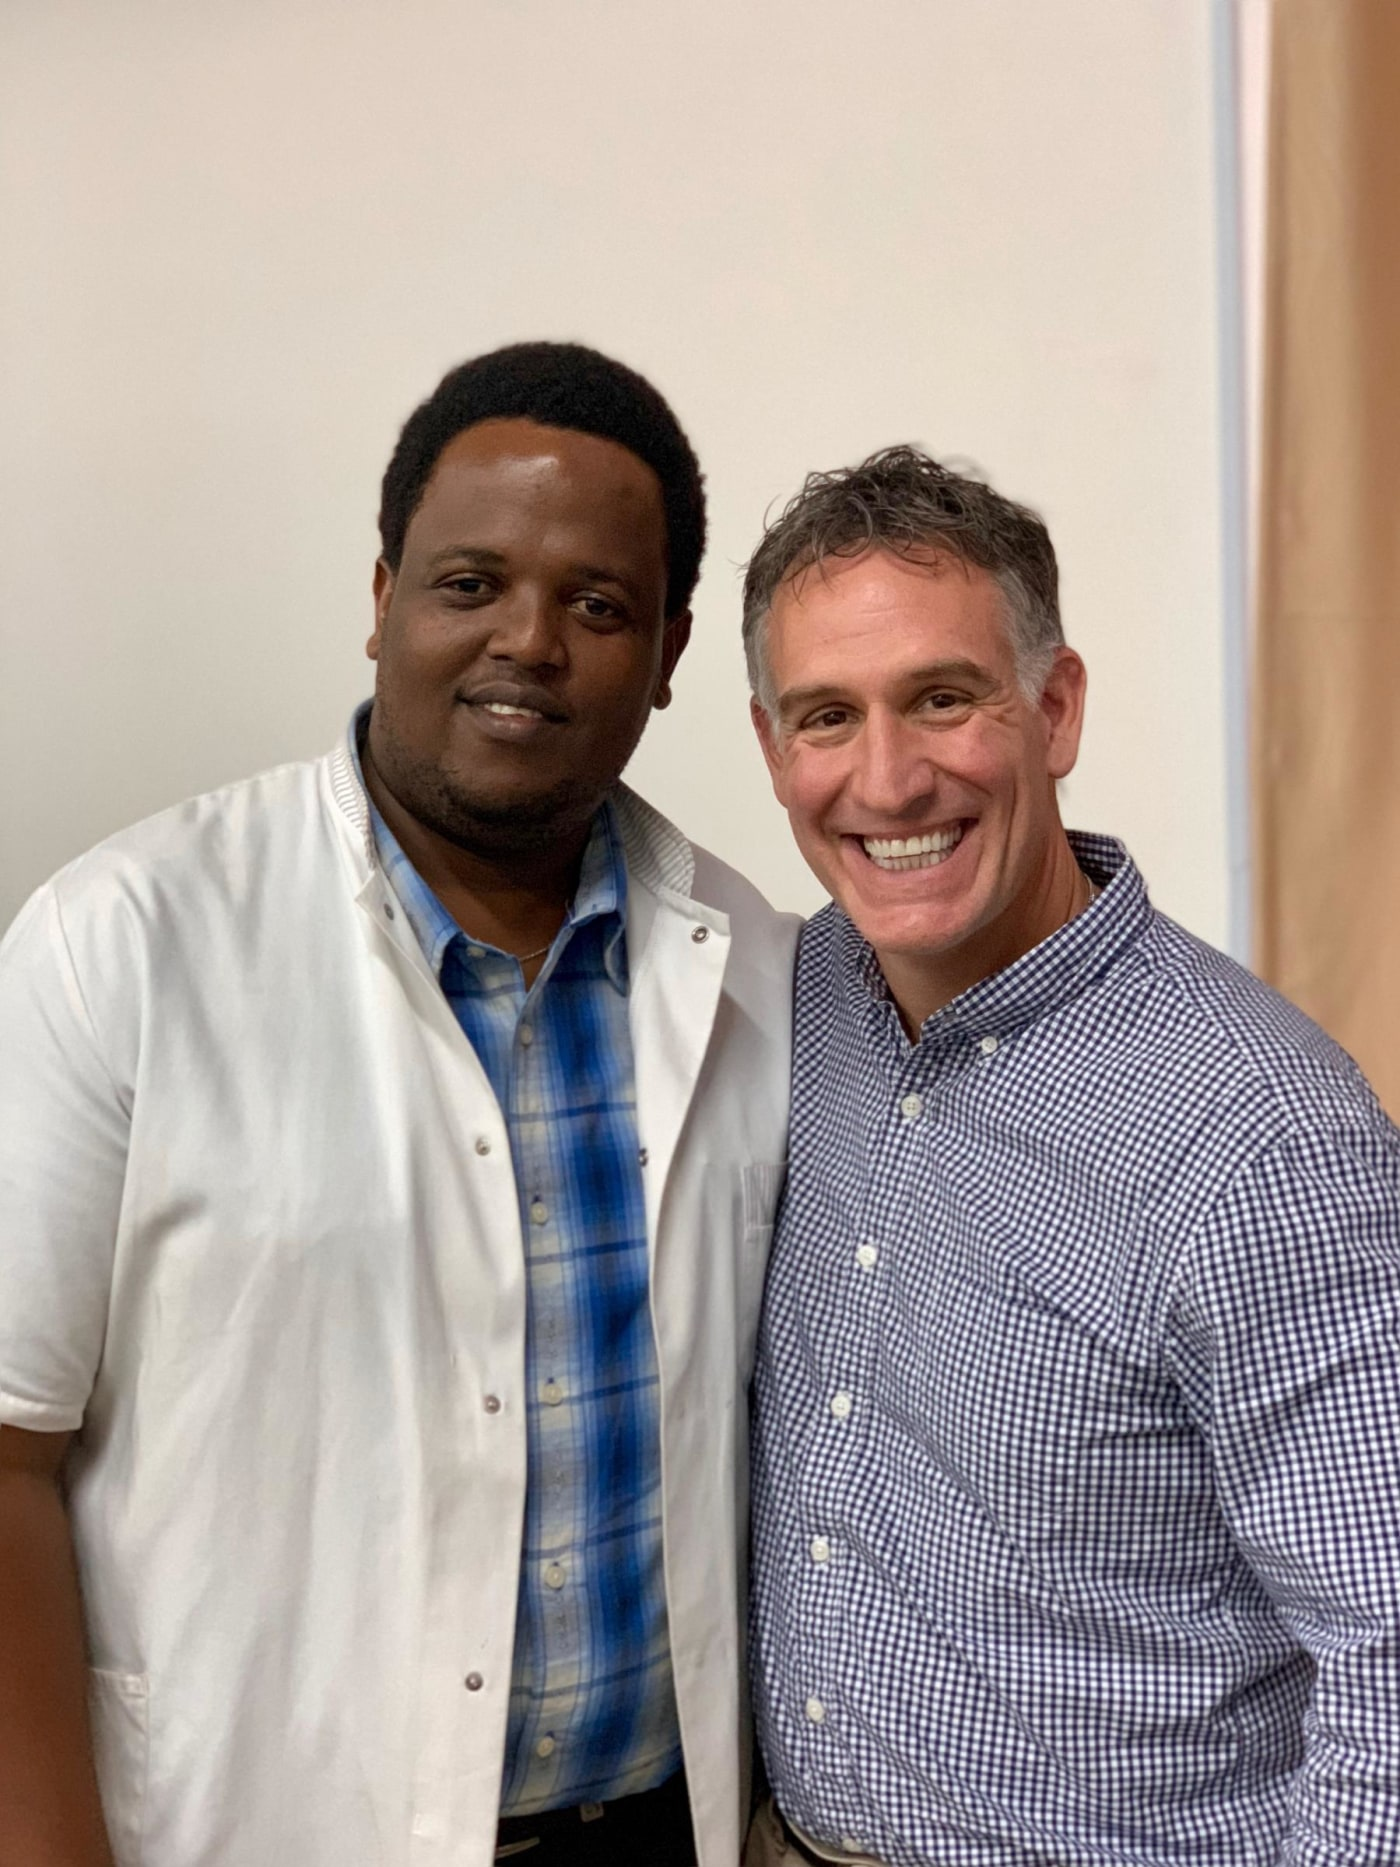 Tanzanian IR resident Dr. Erick Mbuguje with visiting IR faculty Dr. David Prologo from Emory.